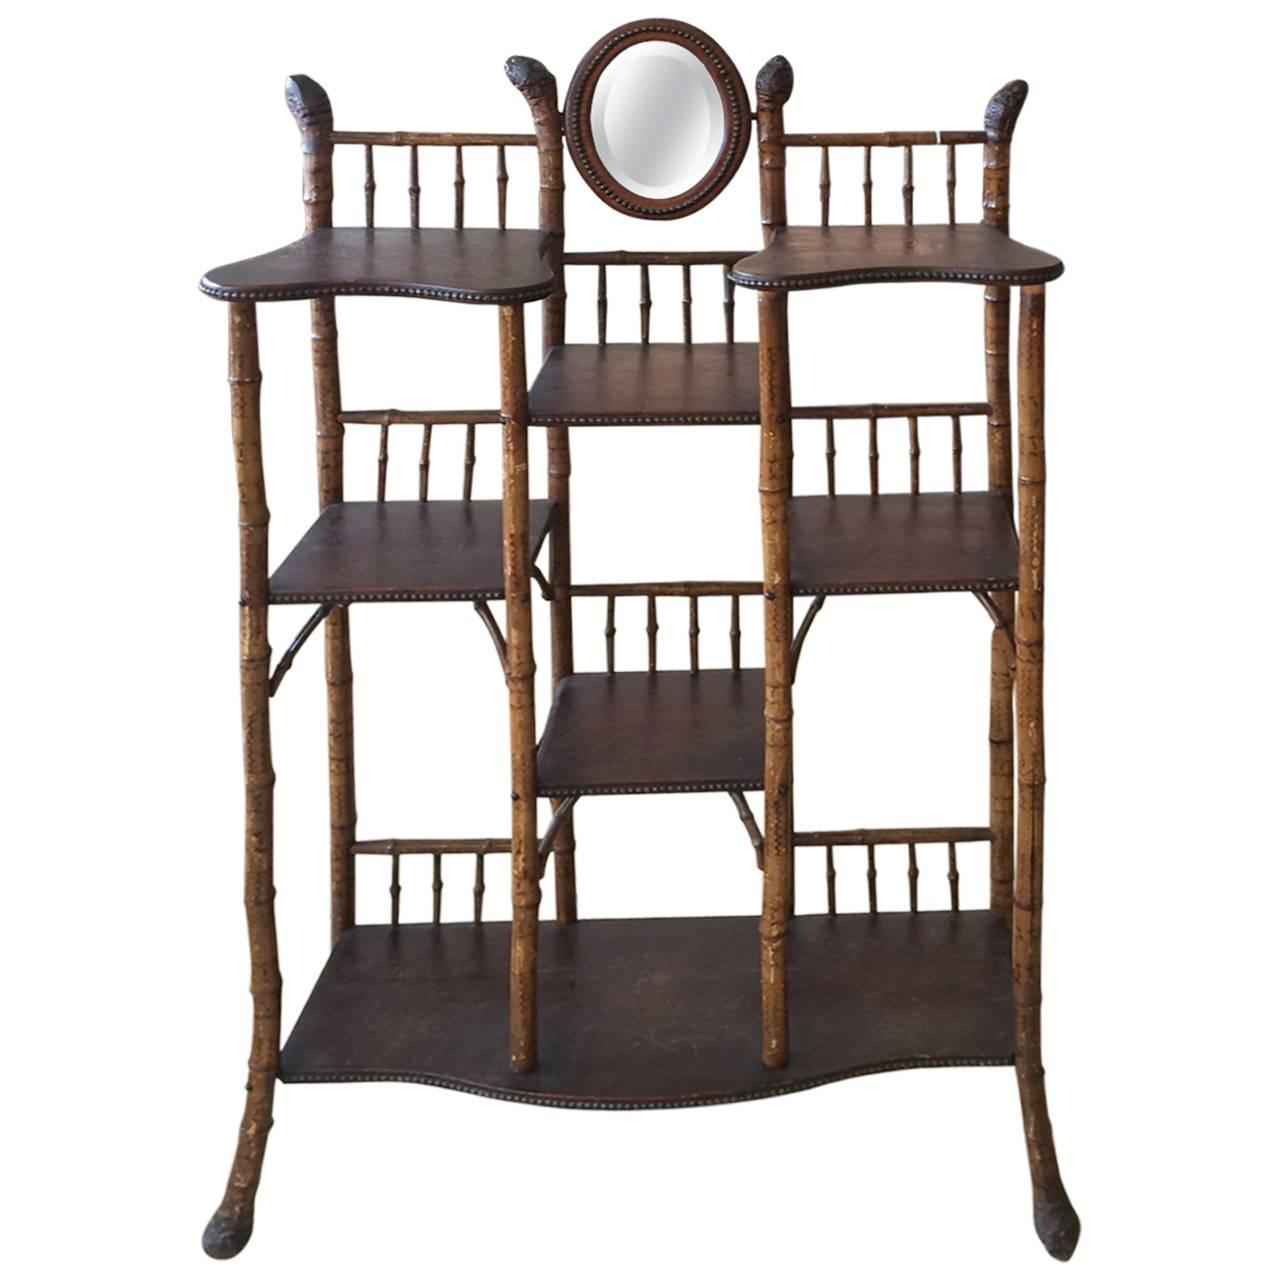 vintage bamboo and wood etagere for sale at 1stdibs. Black Bedroom Furniture Sets. Home Design Ideas